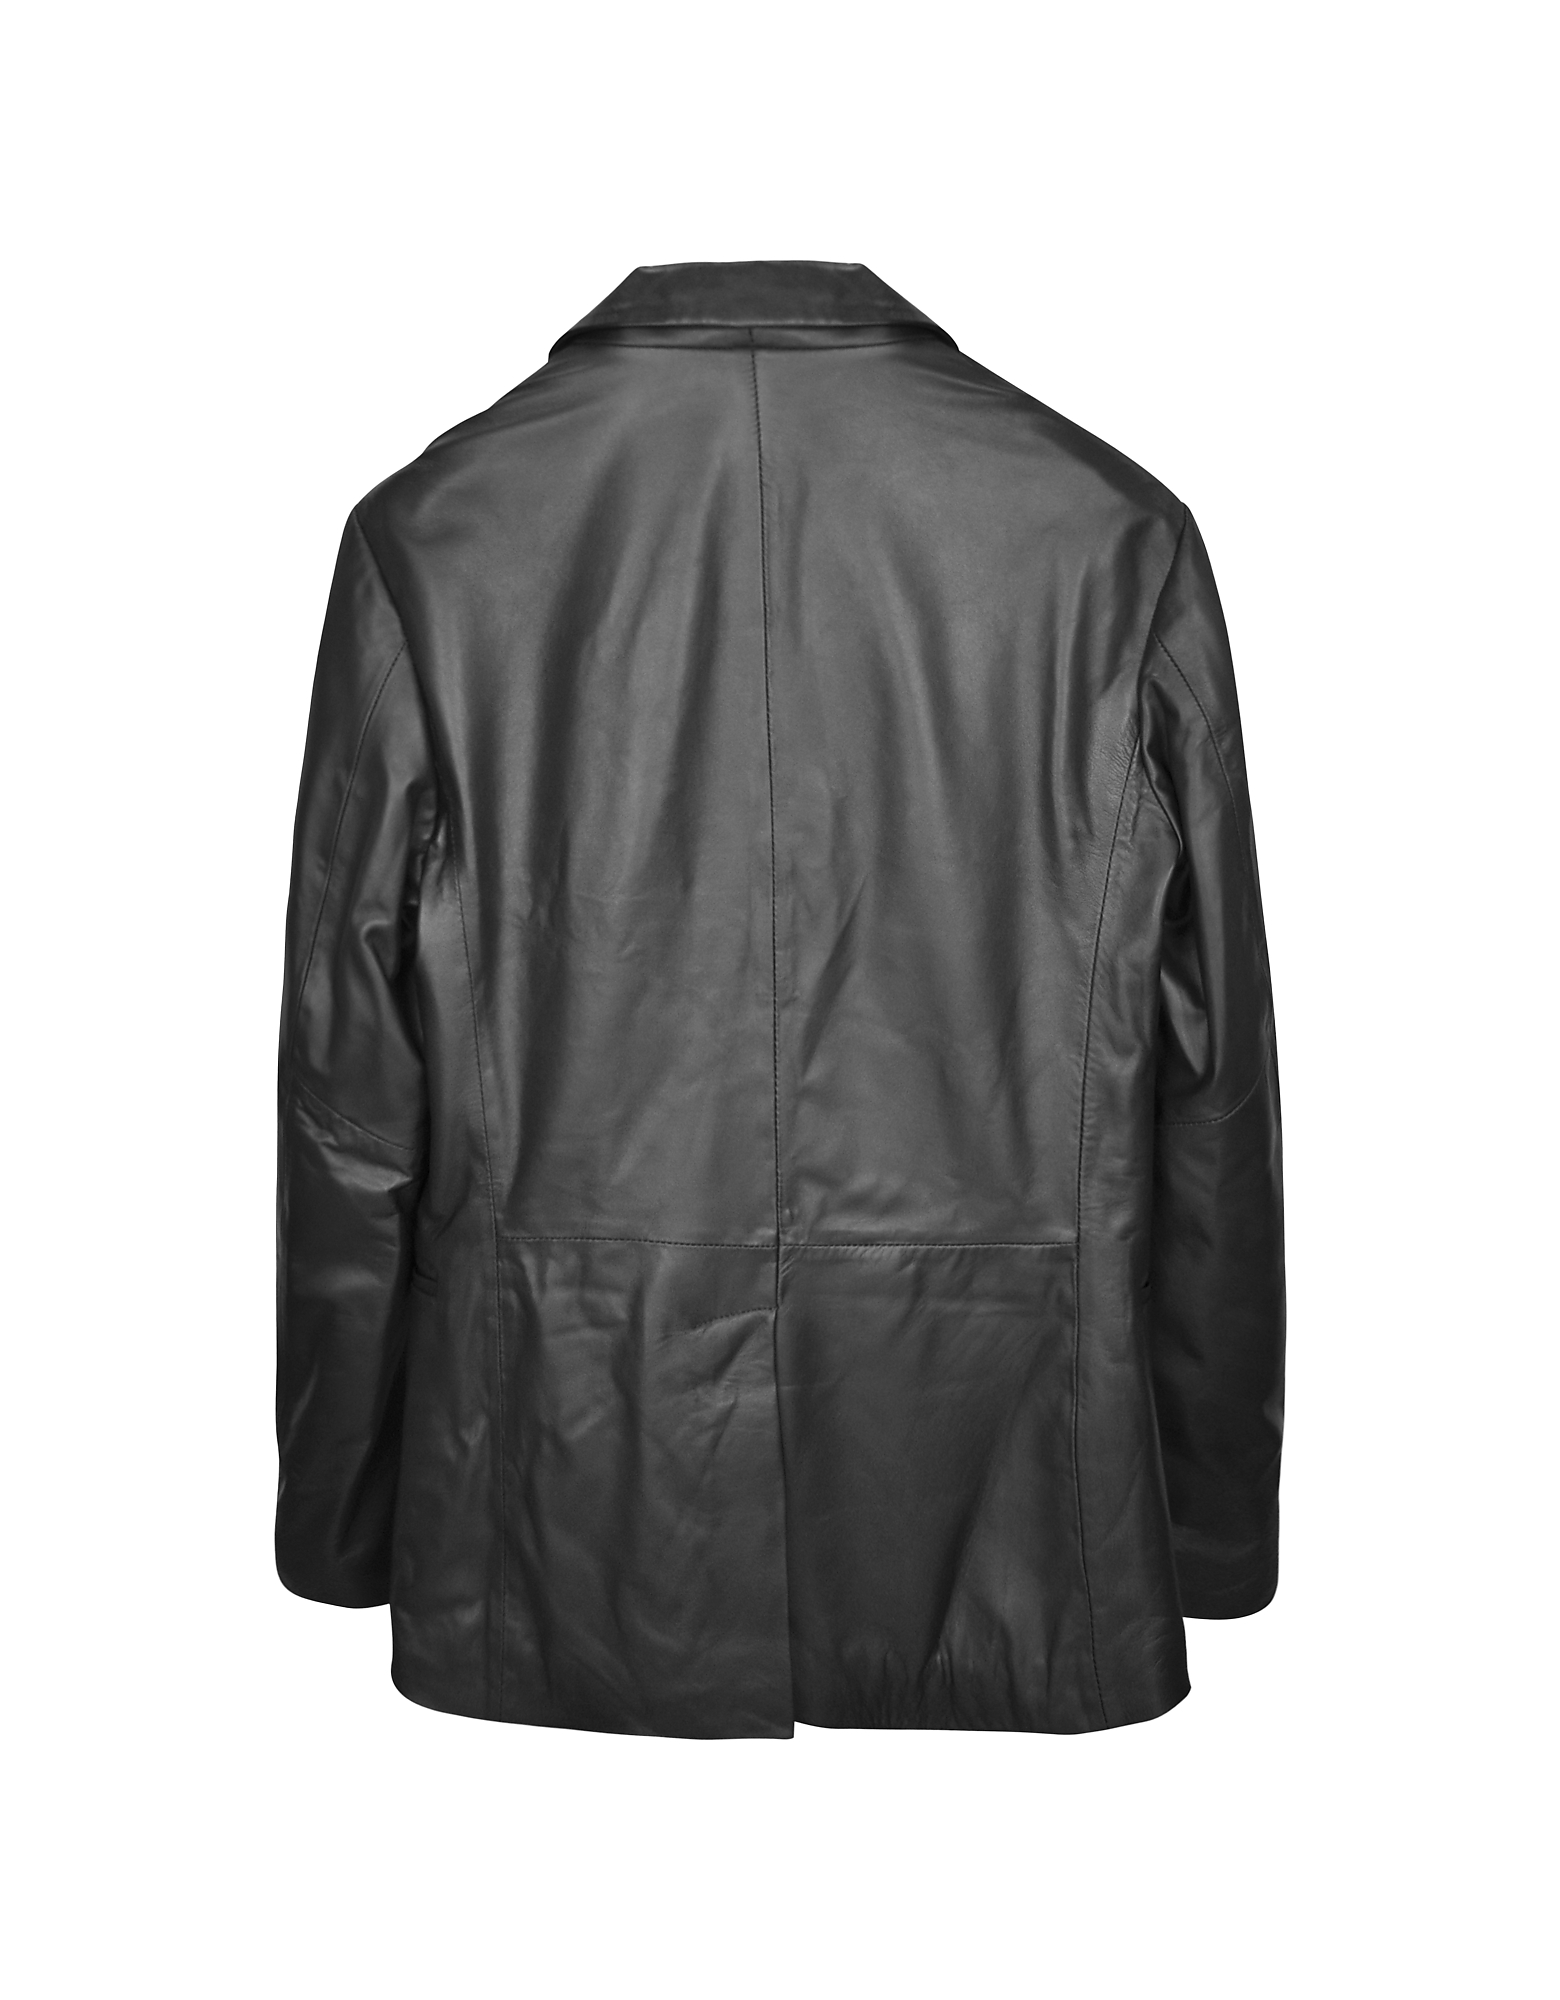 Black Leather Men's Blazer от Forzieri.com INT